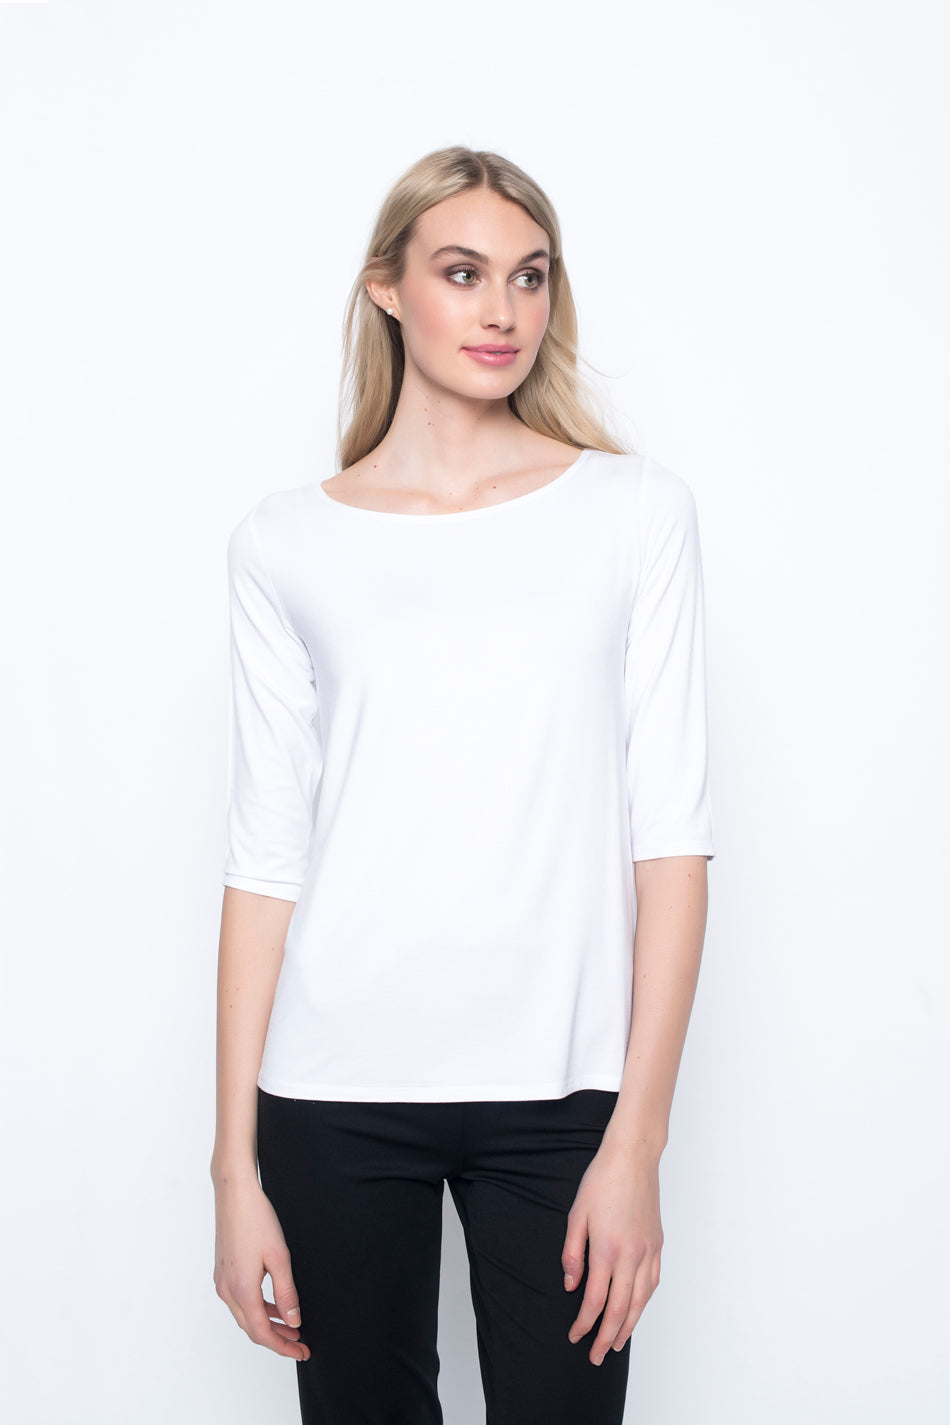 ¾ Sleeve Boat Neck Top in white by Picadilly Canada